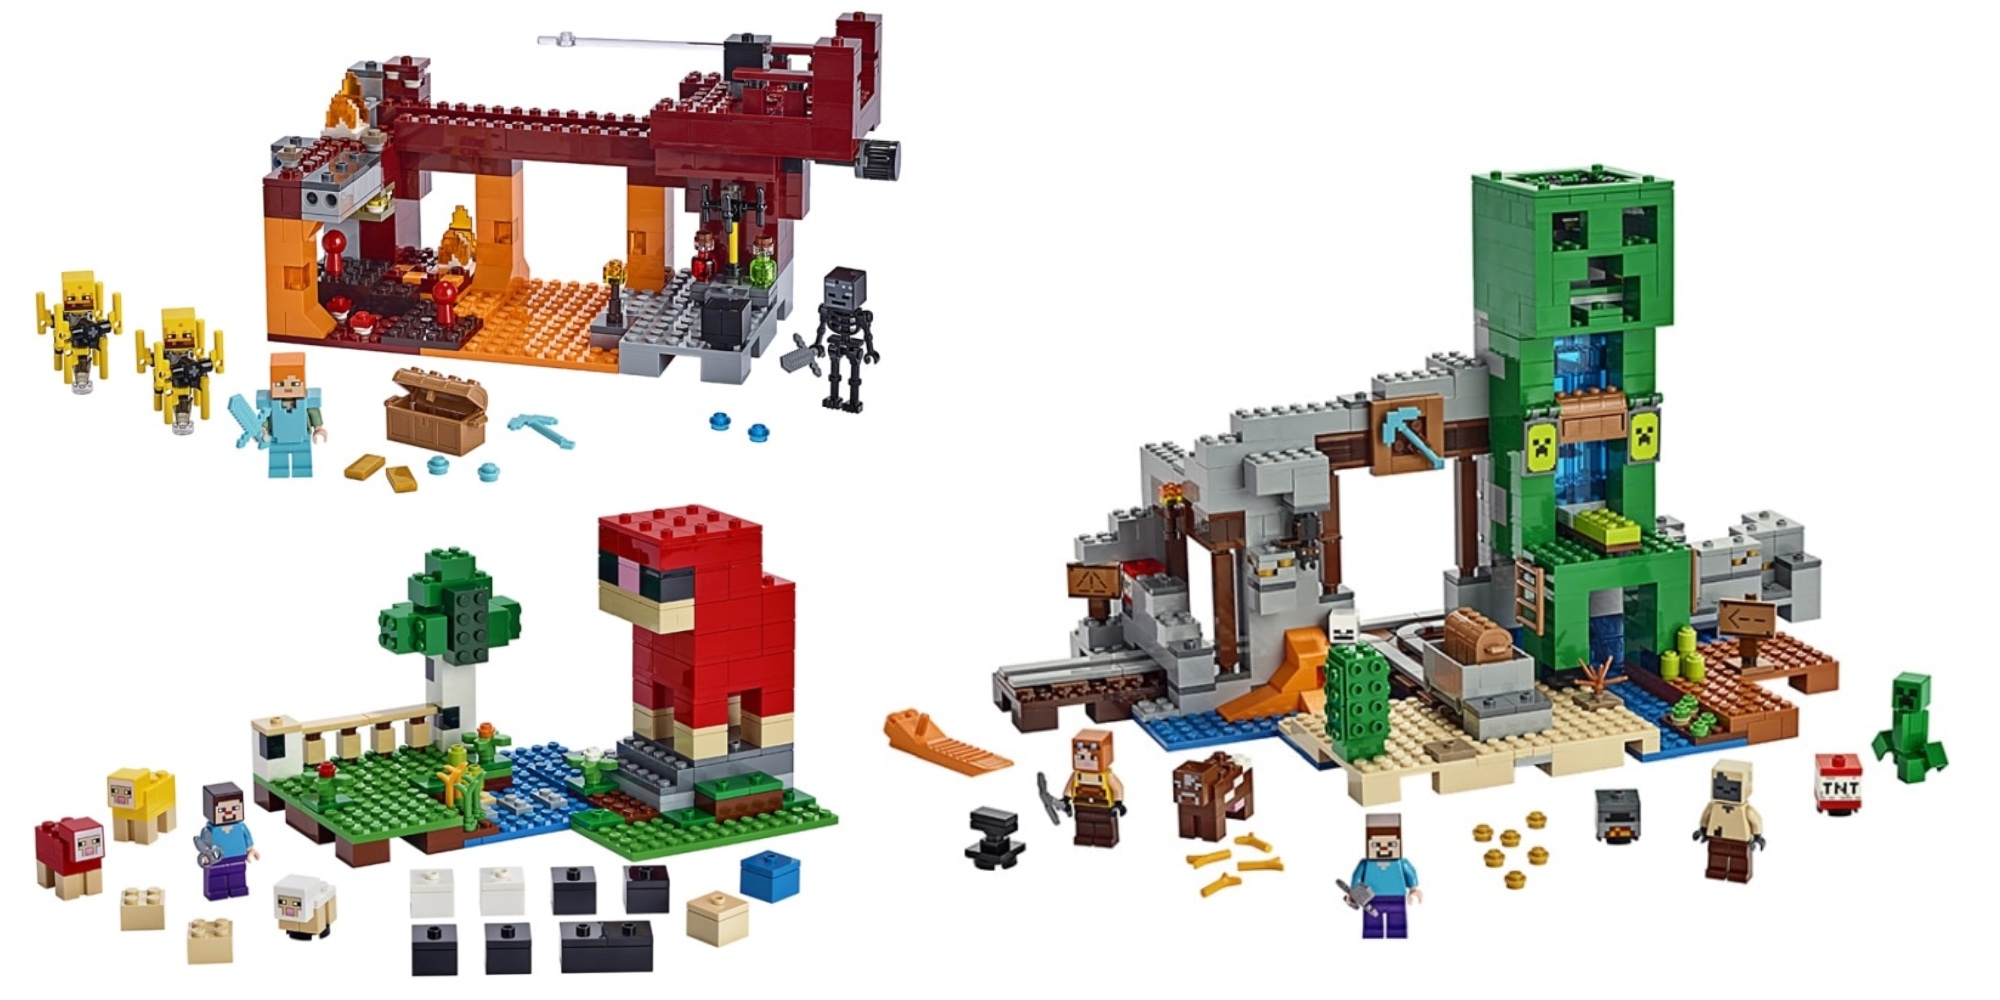 LEGO Minecraft summer sets